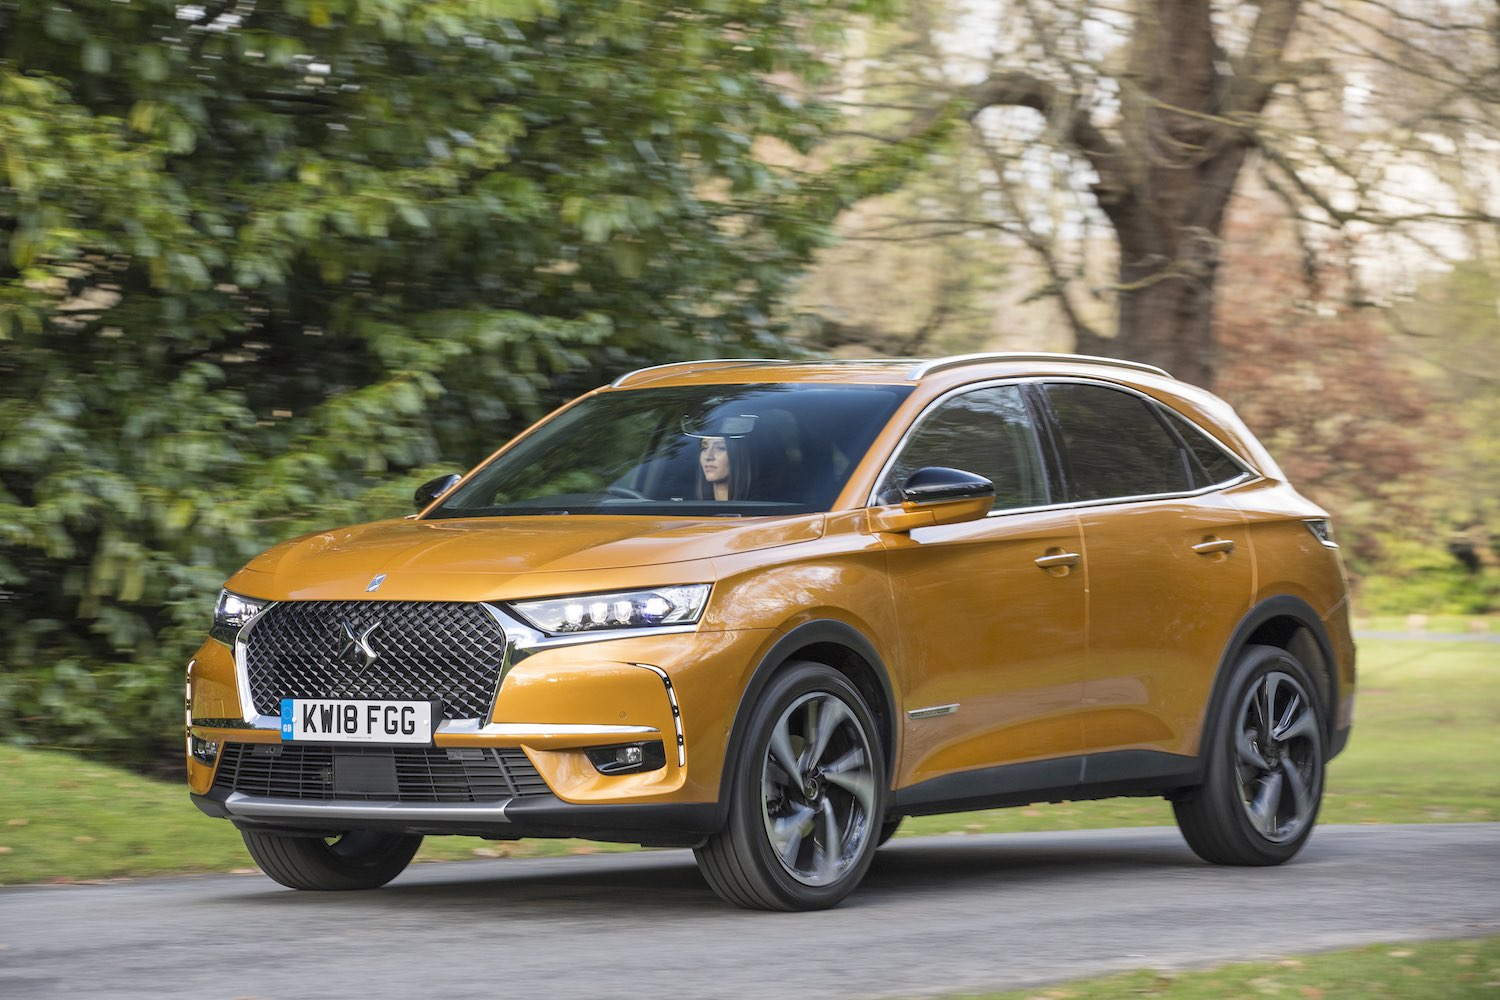 DS 7 Crossback road test 2018 | The Car Expert